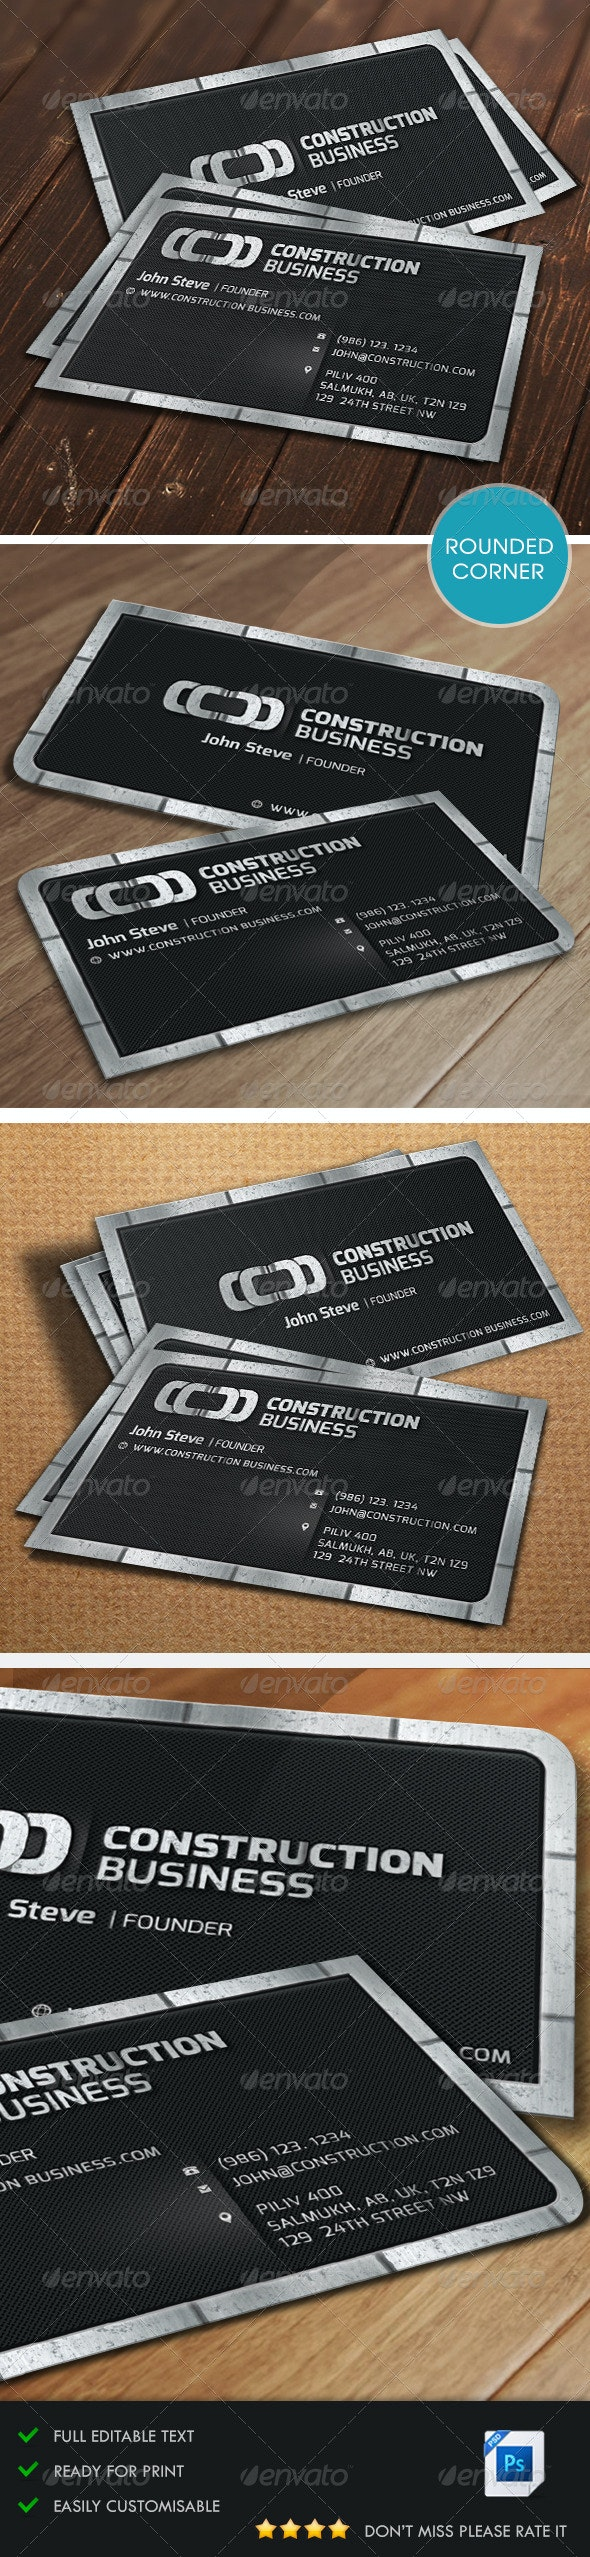 Construction Metalic Business Card - Corporate Business Cards